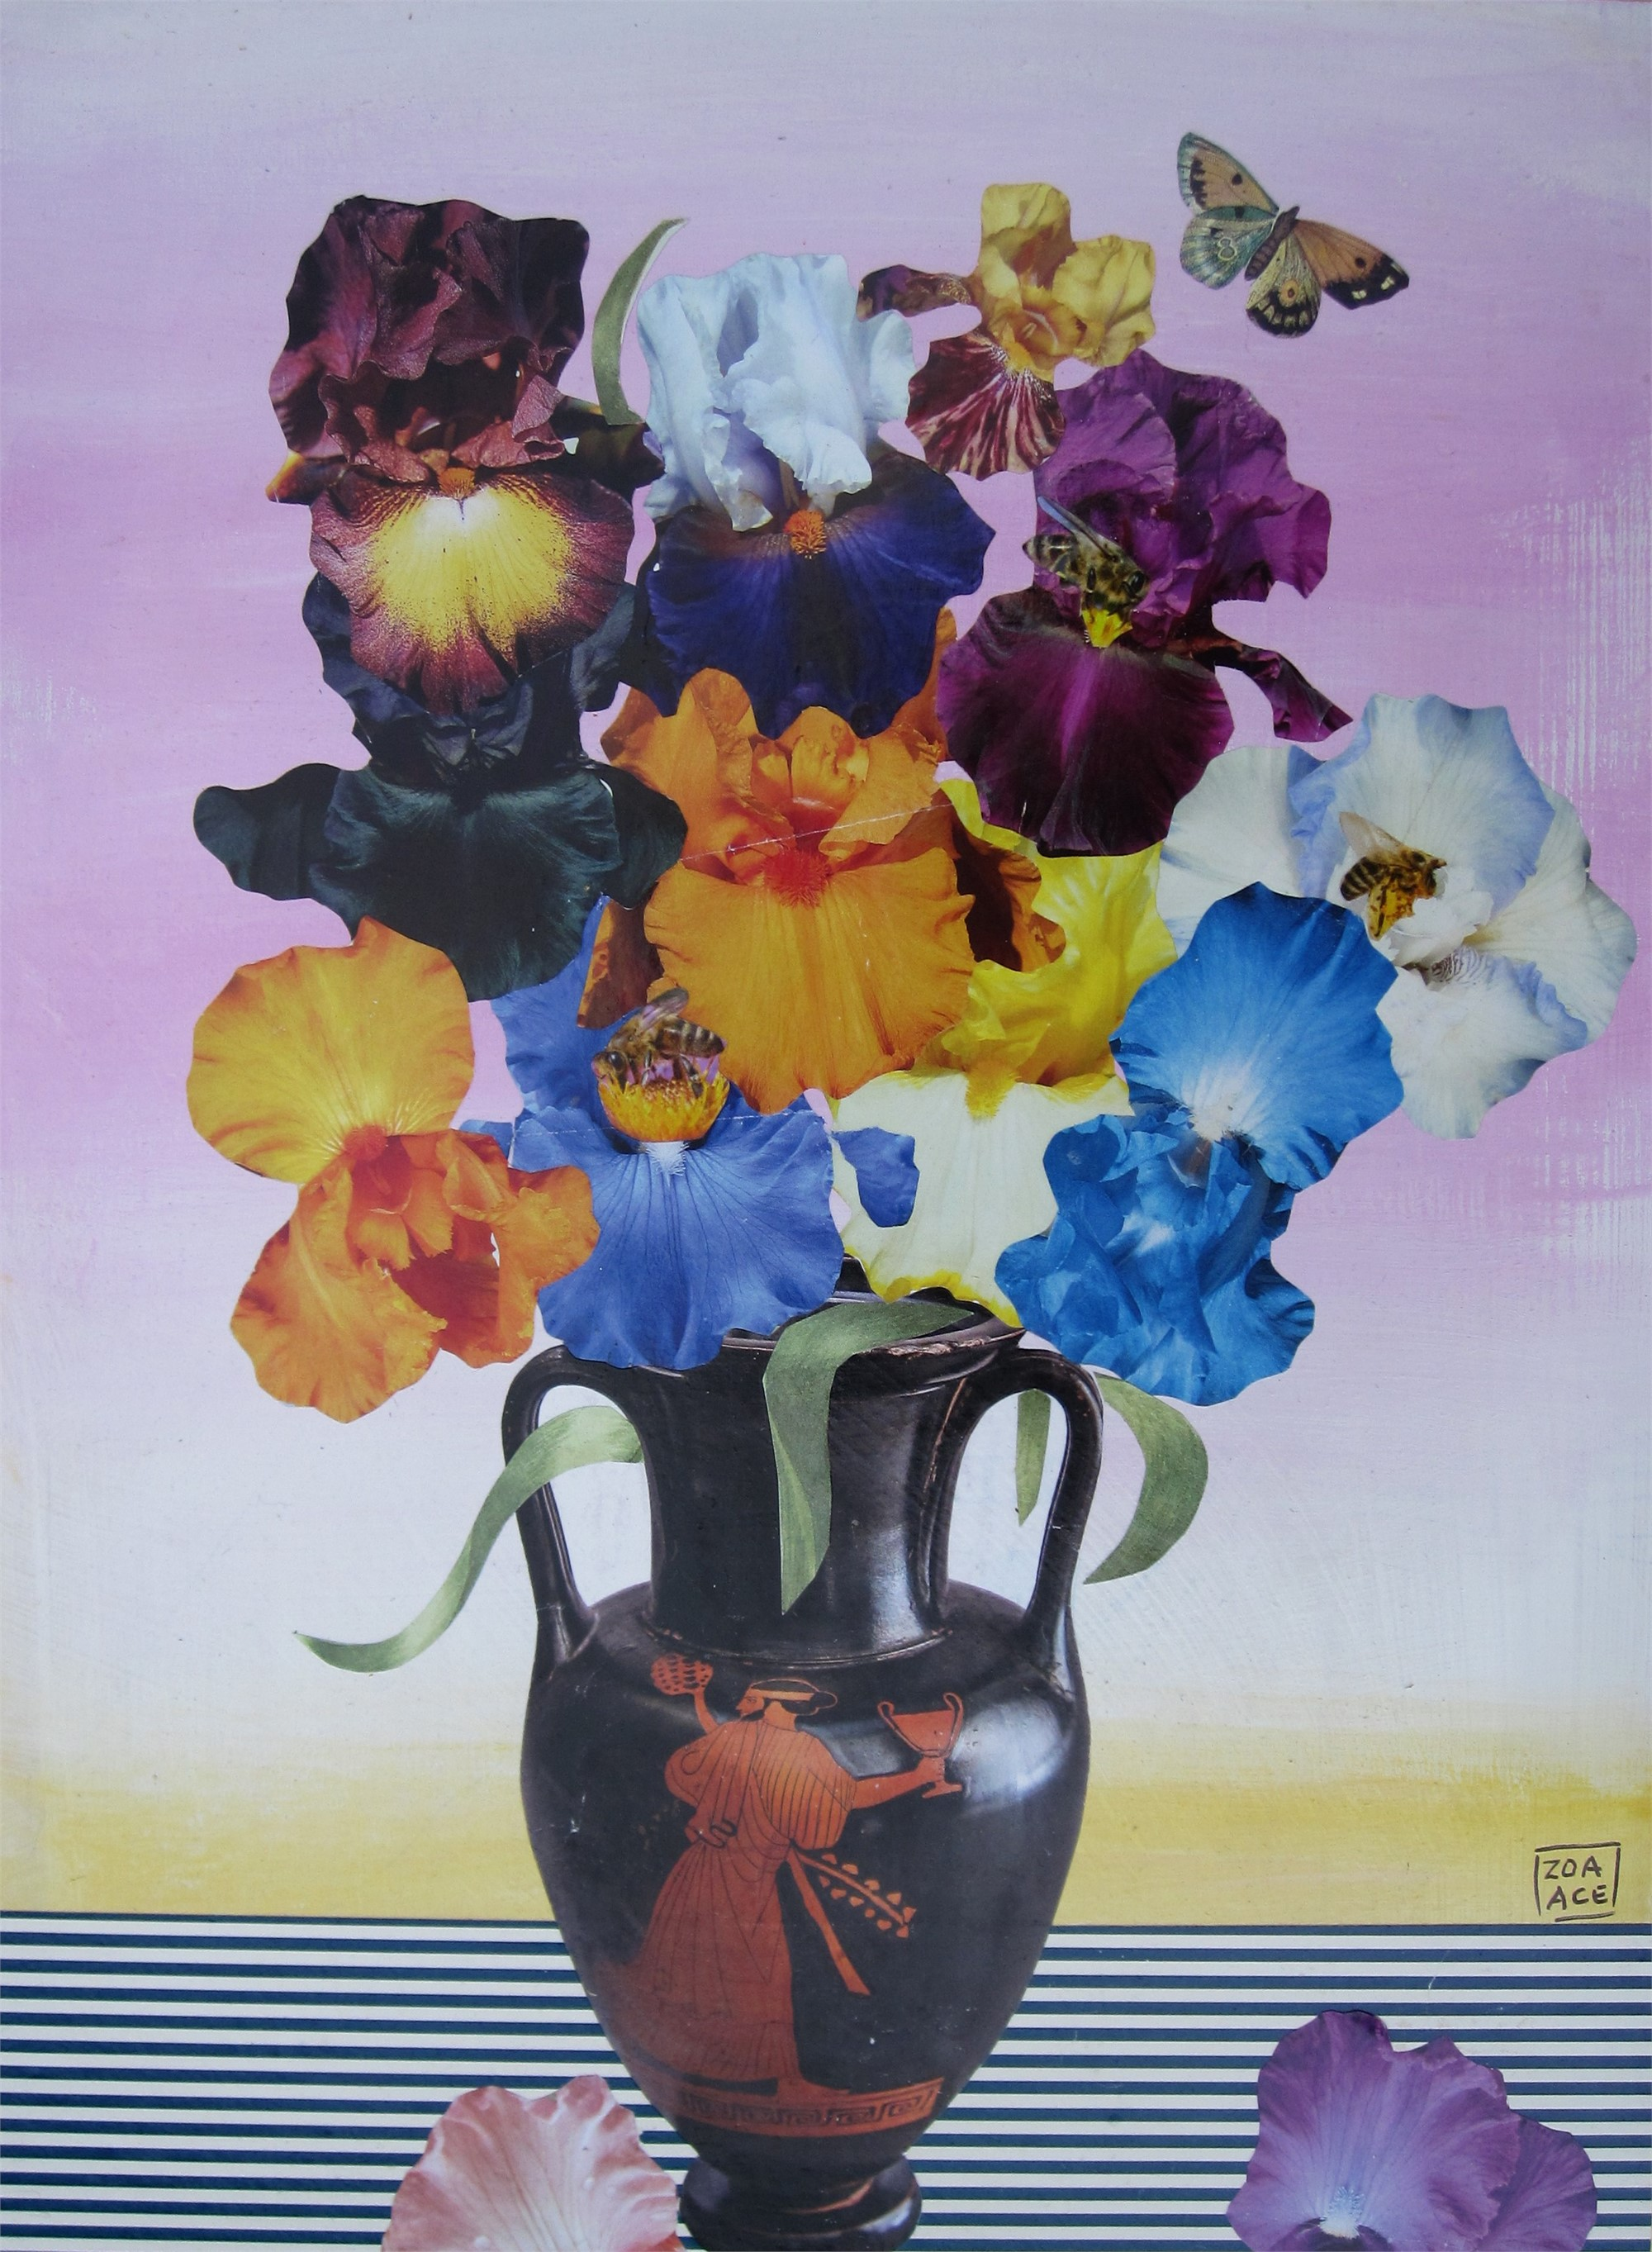 Iris in a Greek Vase by Zoa Ace